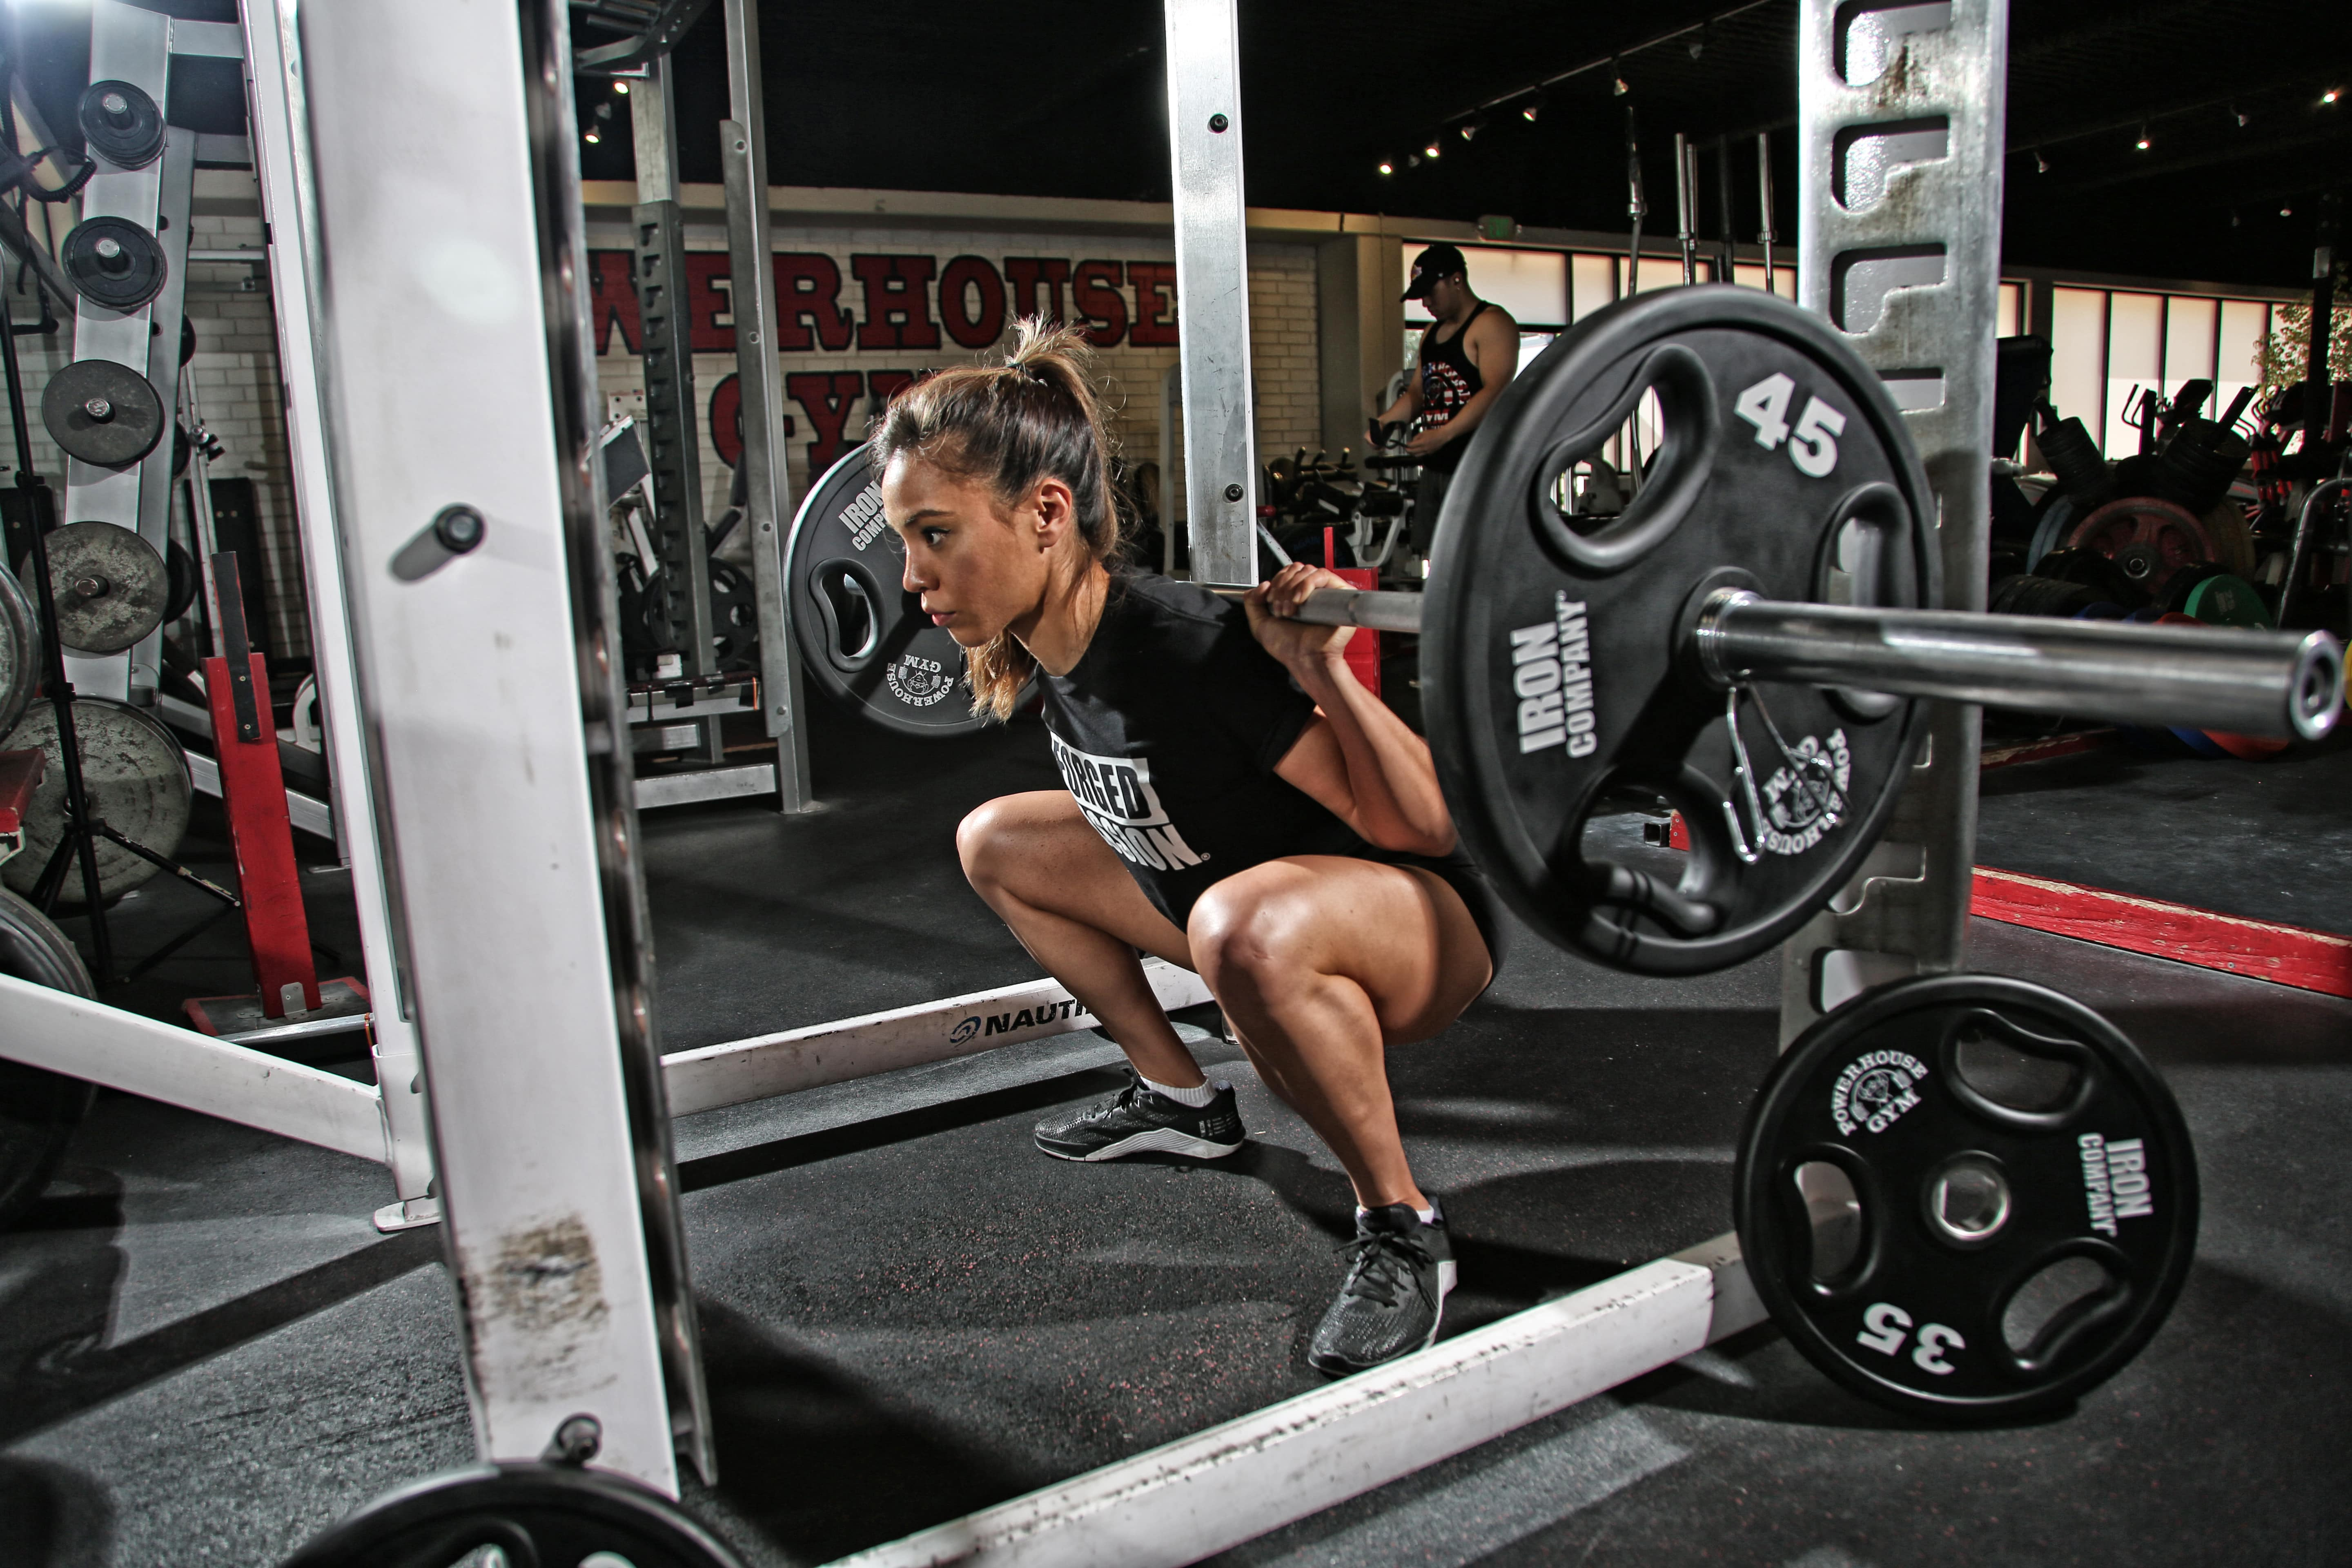 Full body barbell workouts article by Chuck Miller